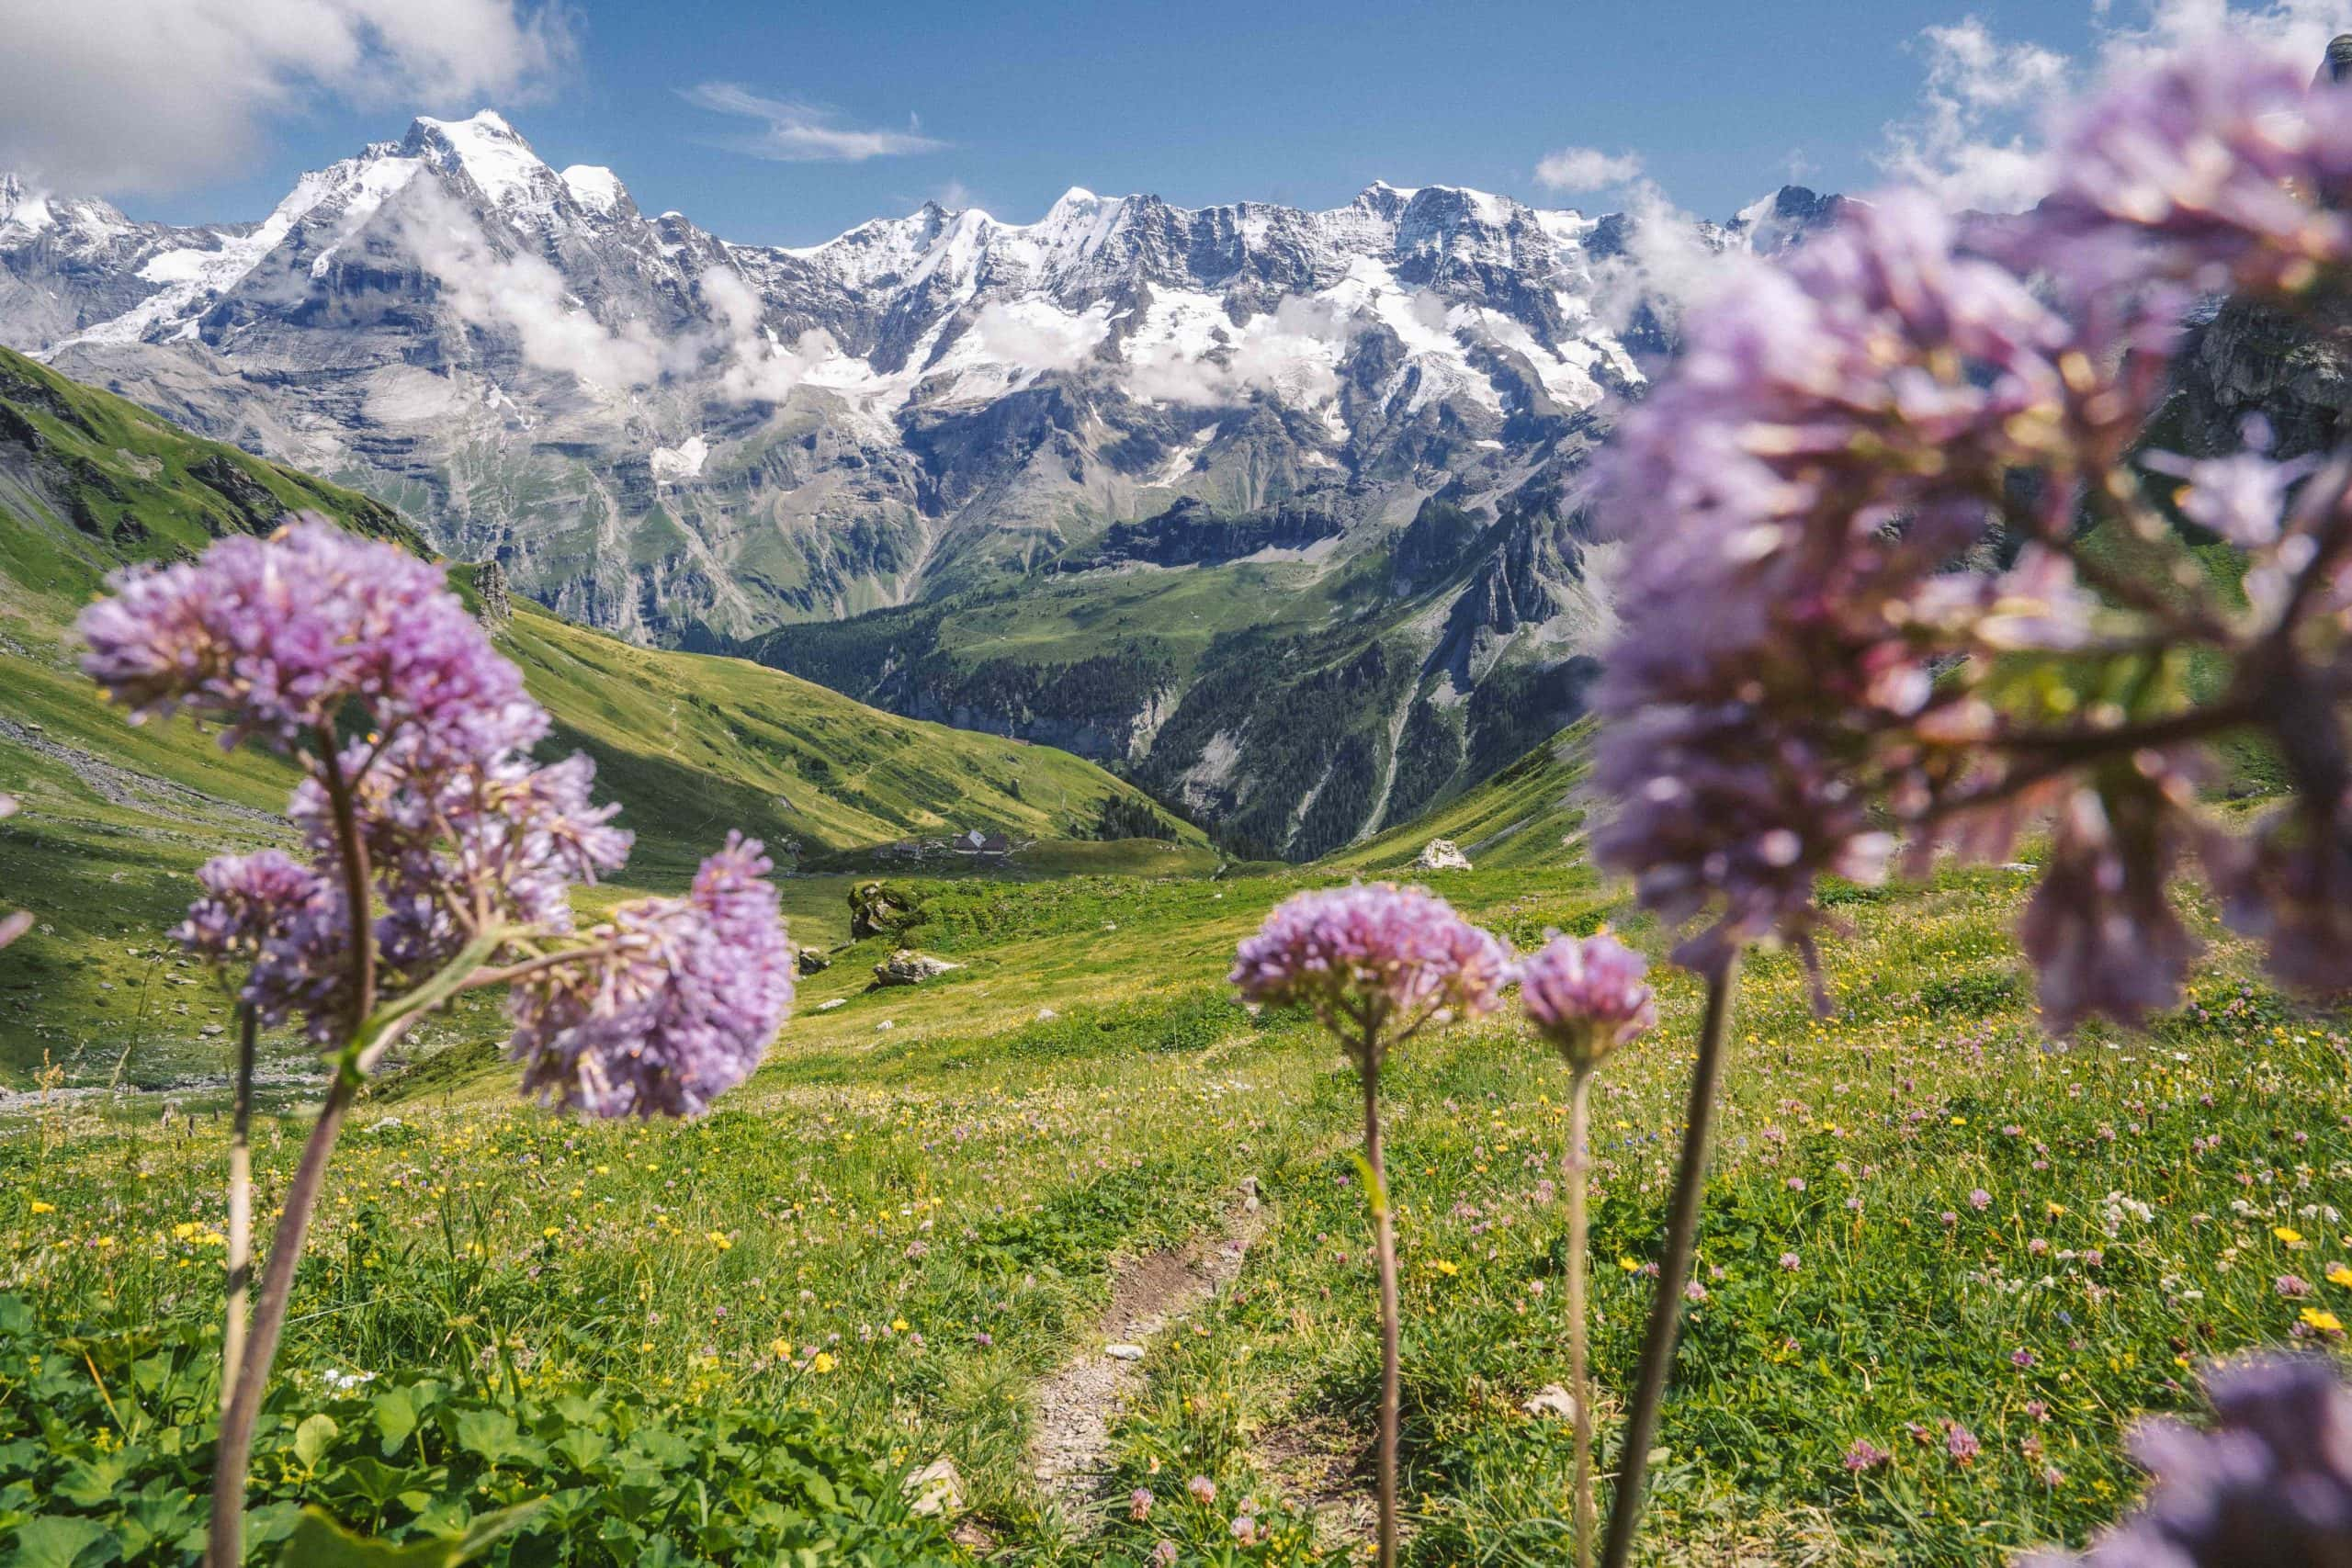 flowers and mountain view during Schilthorn hike in Switzerland